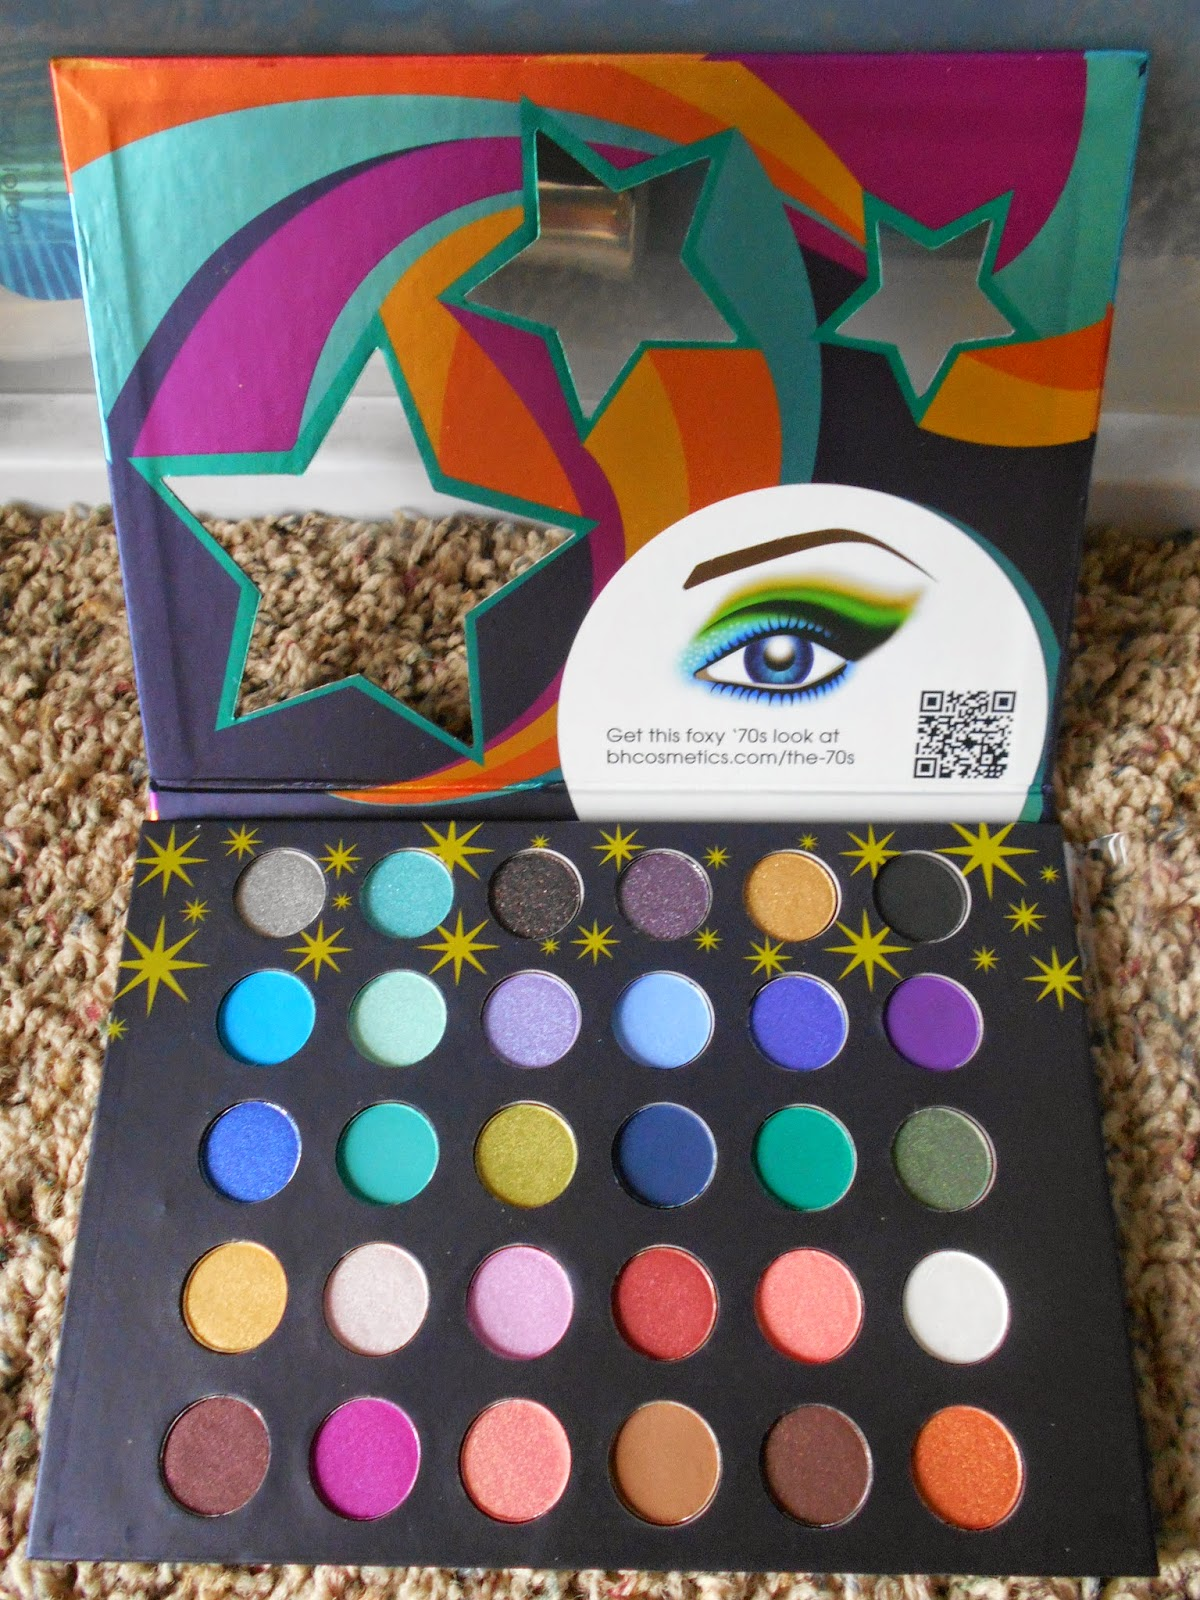 bh Cosmetics Eyes On The 70's Eyeshadow Palette